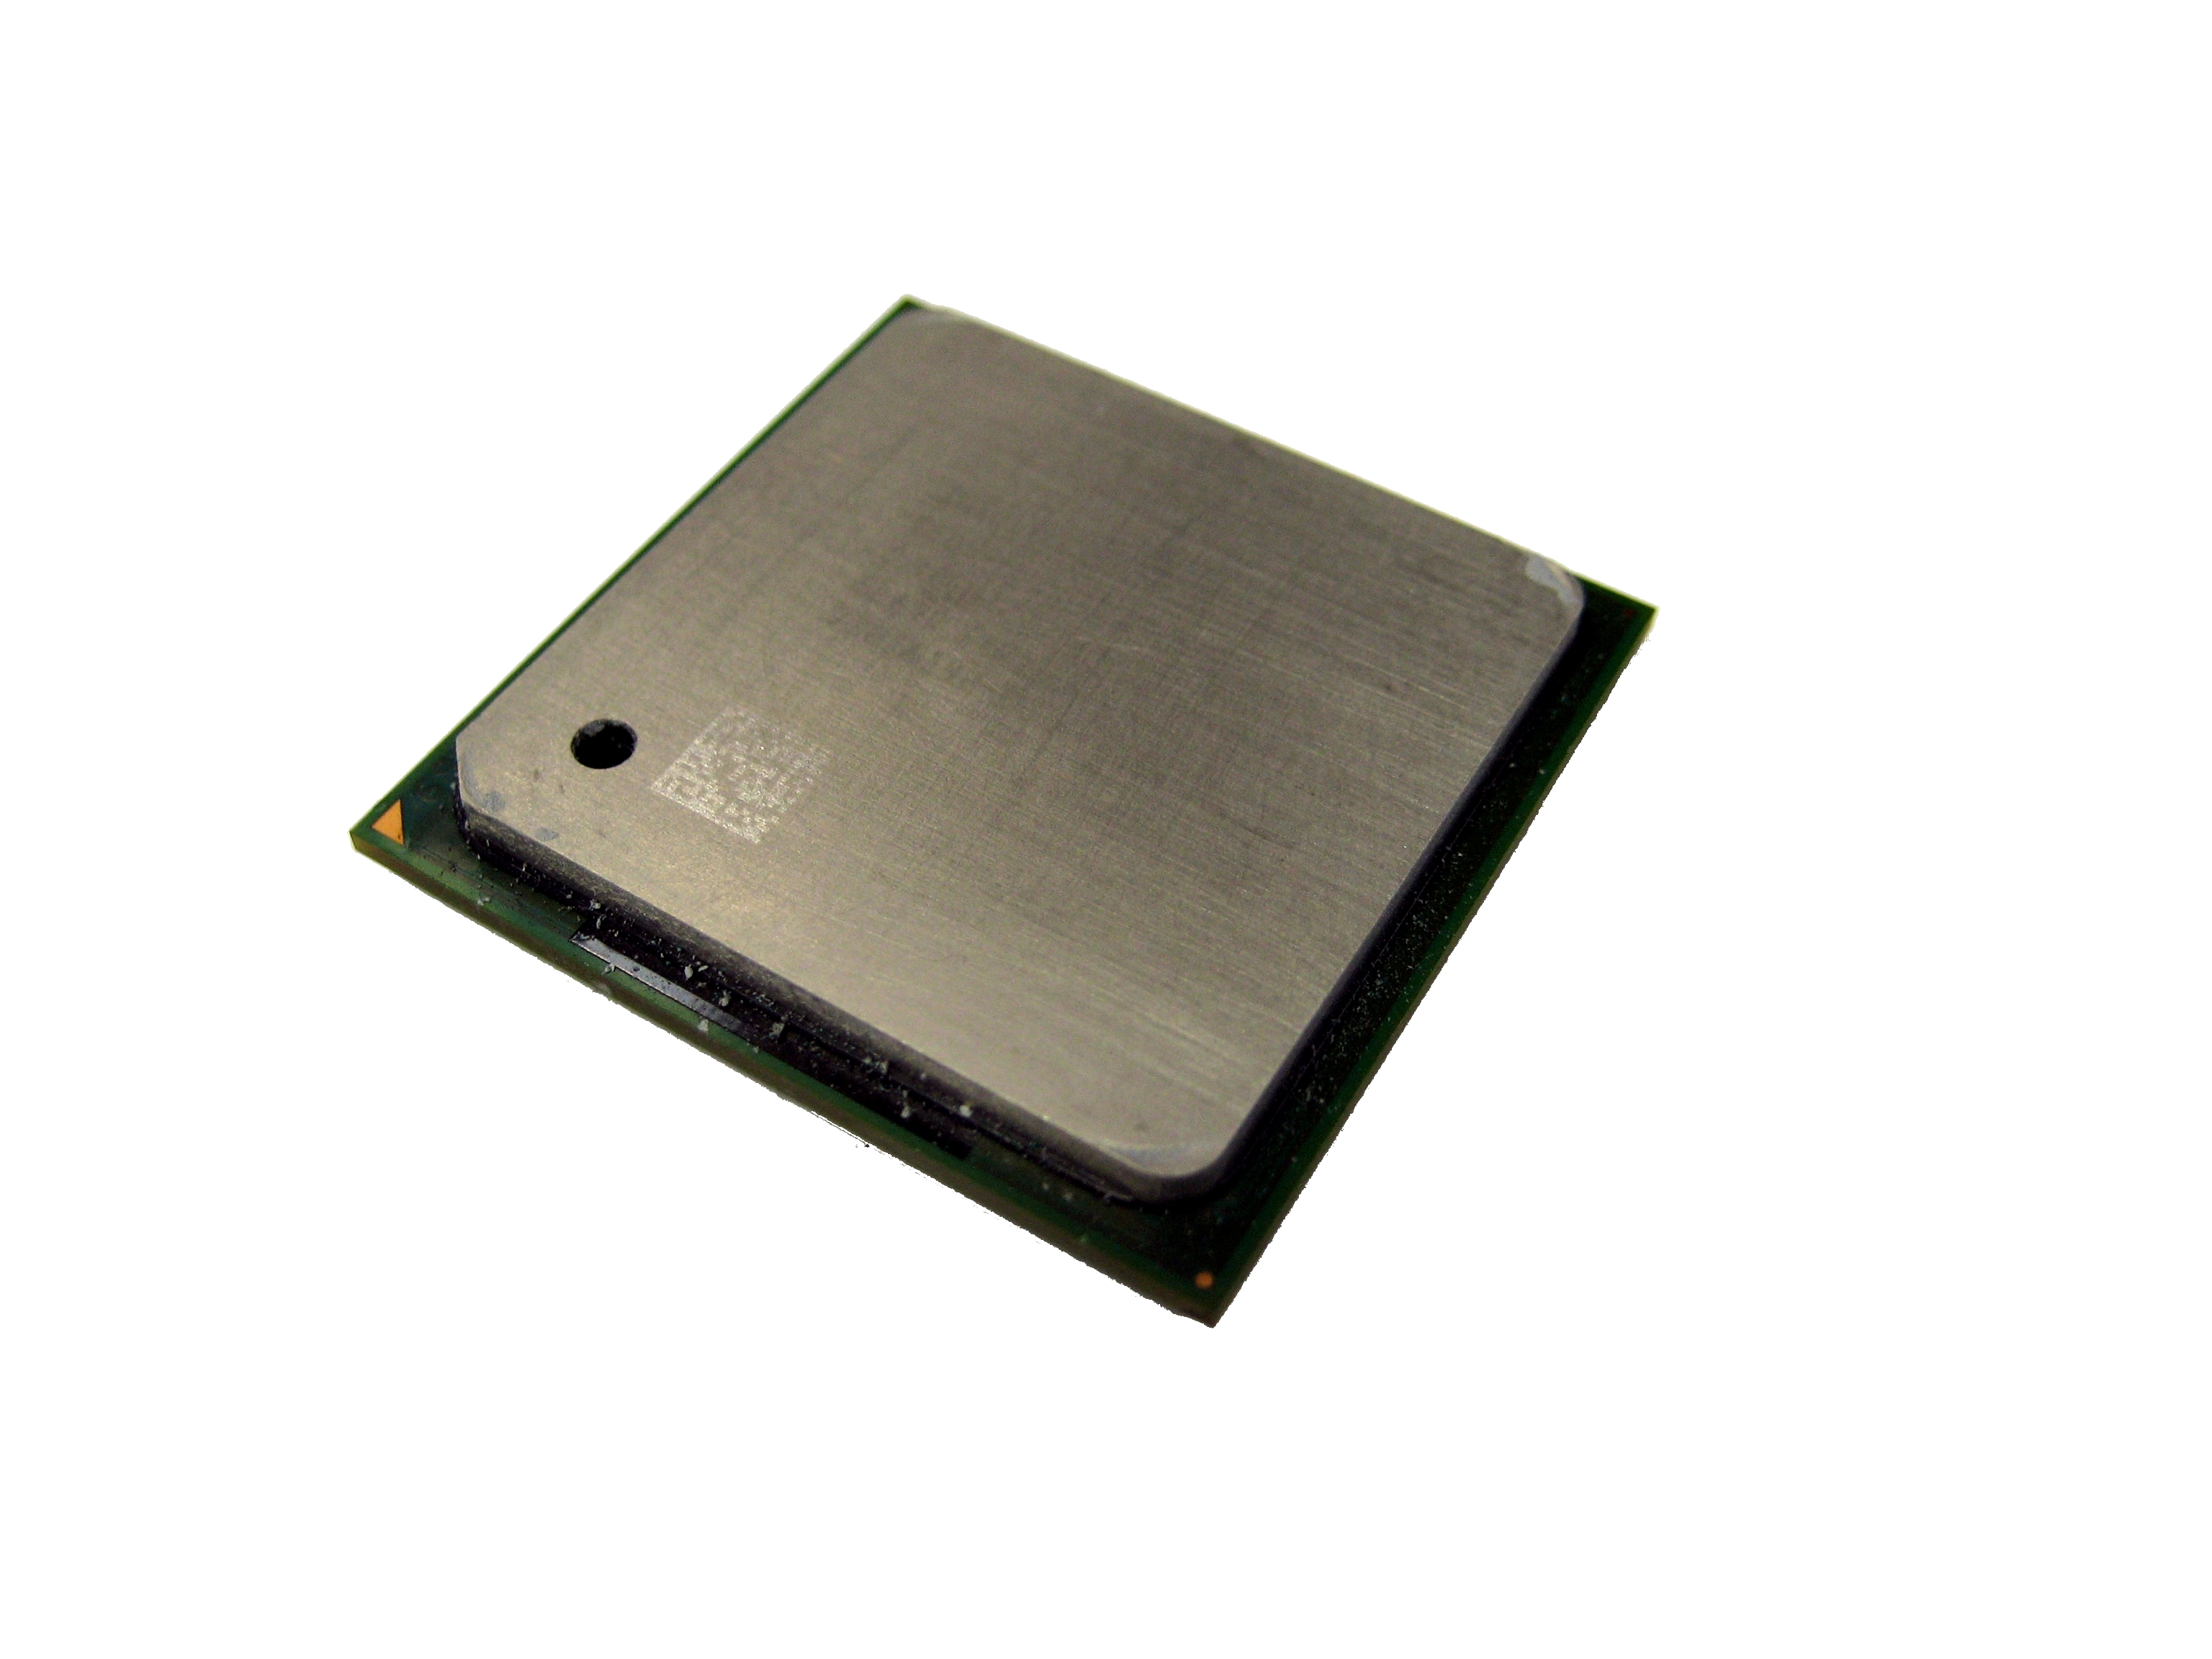 Intel SL6V2 Celeron 2.4GHz/128/400 Socket 478 Processor